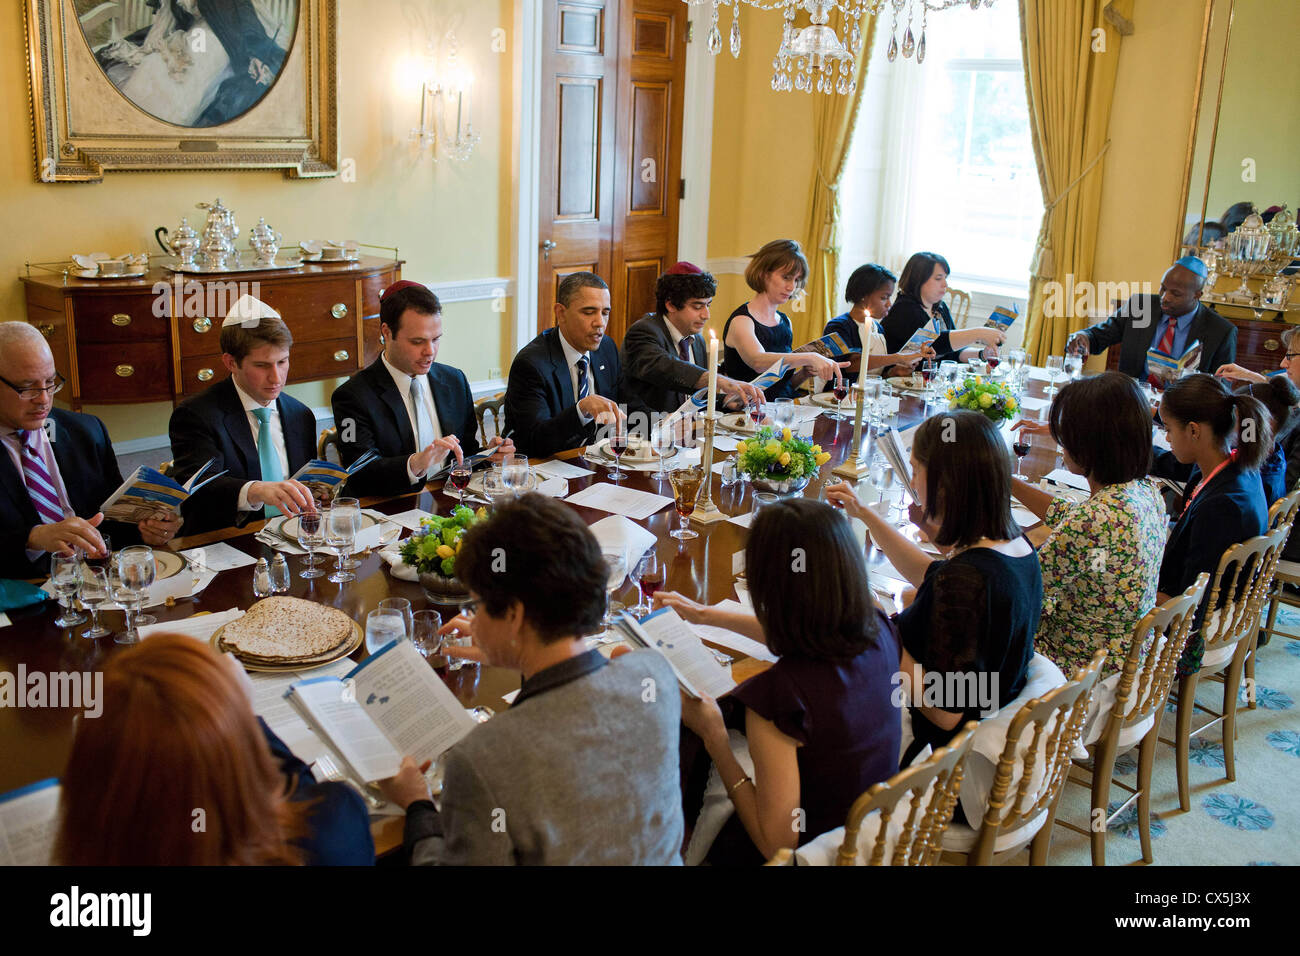 US President Barack Obama and First Lady Michelle Obama mark the beginning of Passover with a Seder in the Old Family - Stock Image